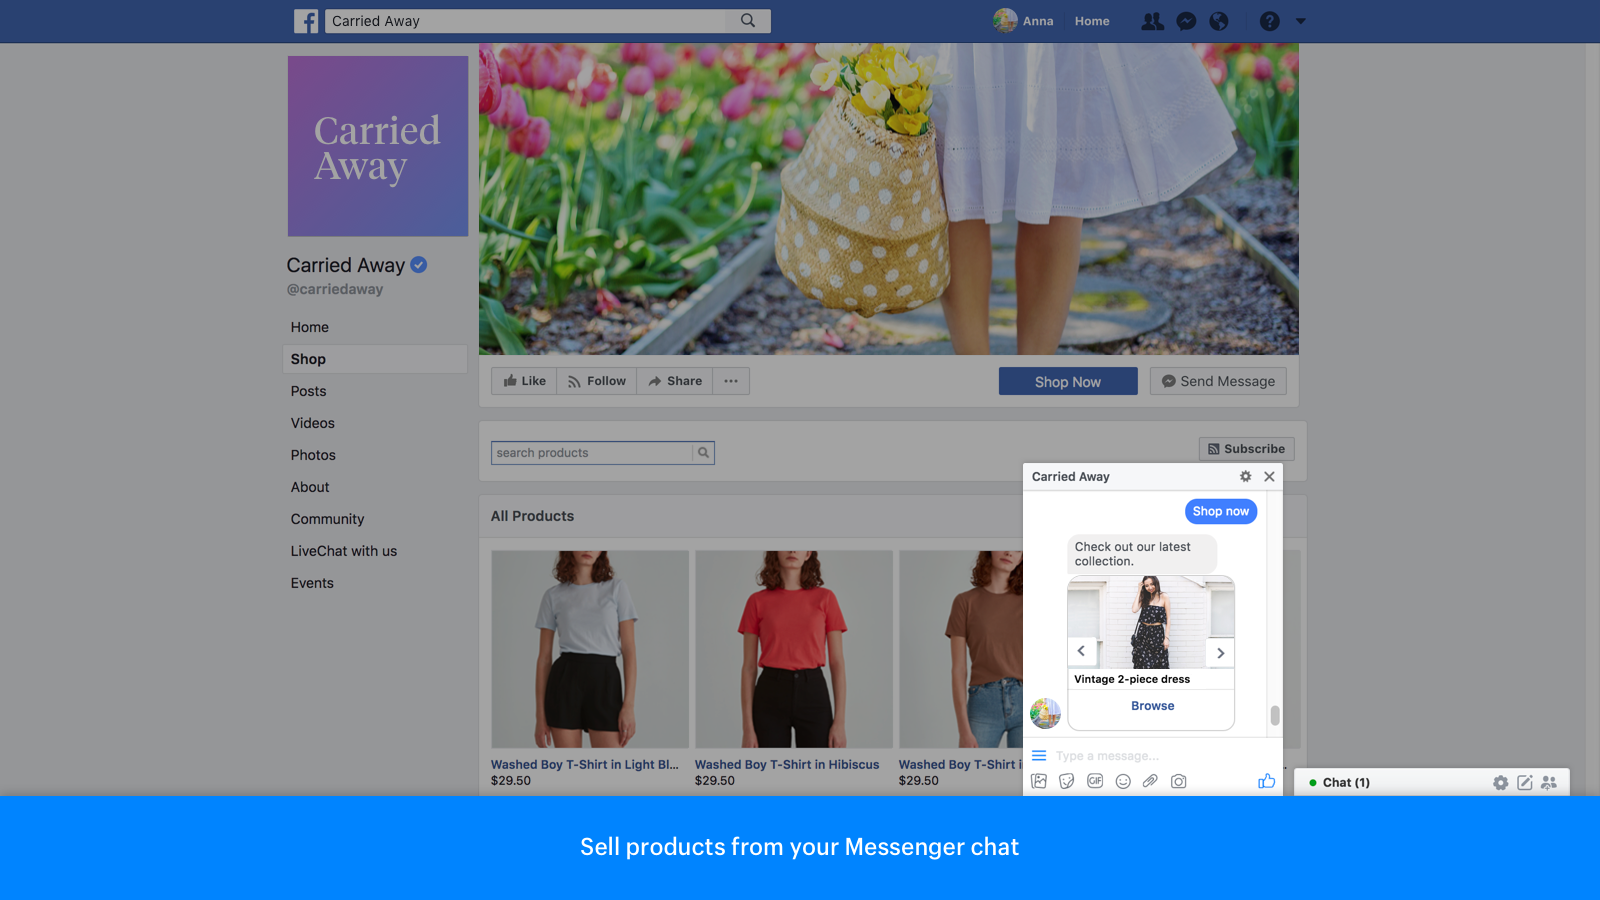 Sell products from your Messenger chat